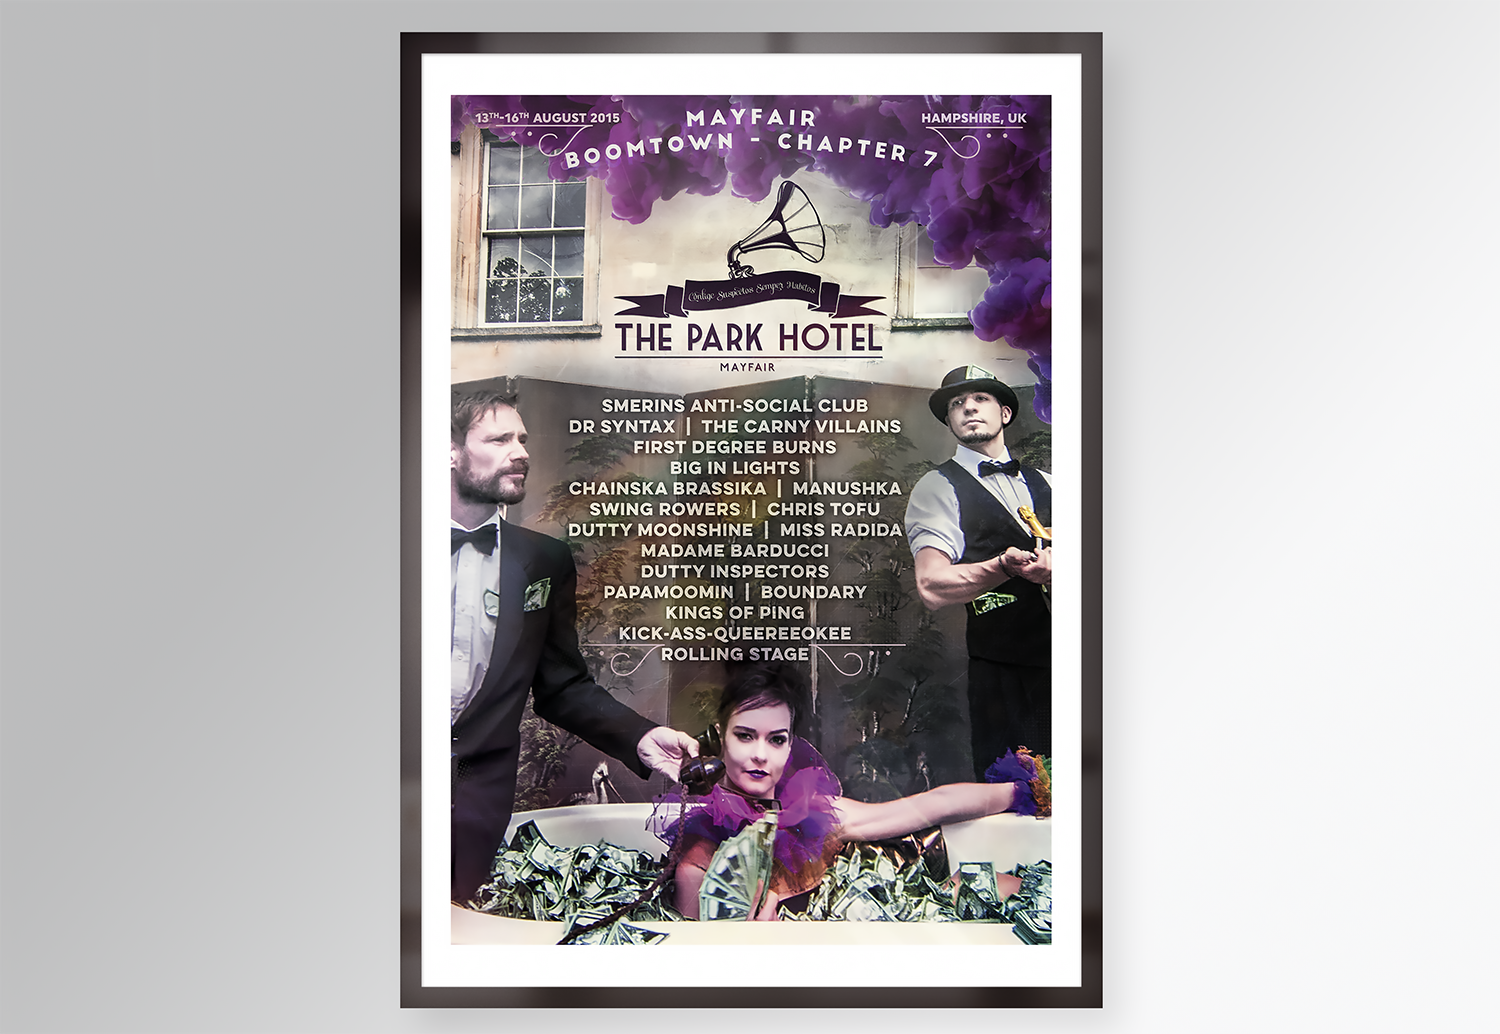 Park Hotel, Mayfair @ Boomtown Festival Poster Design